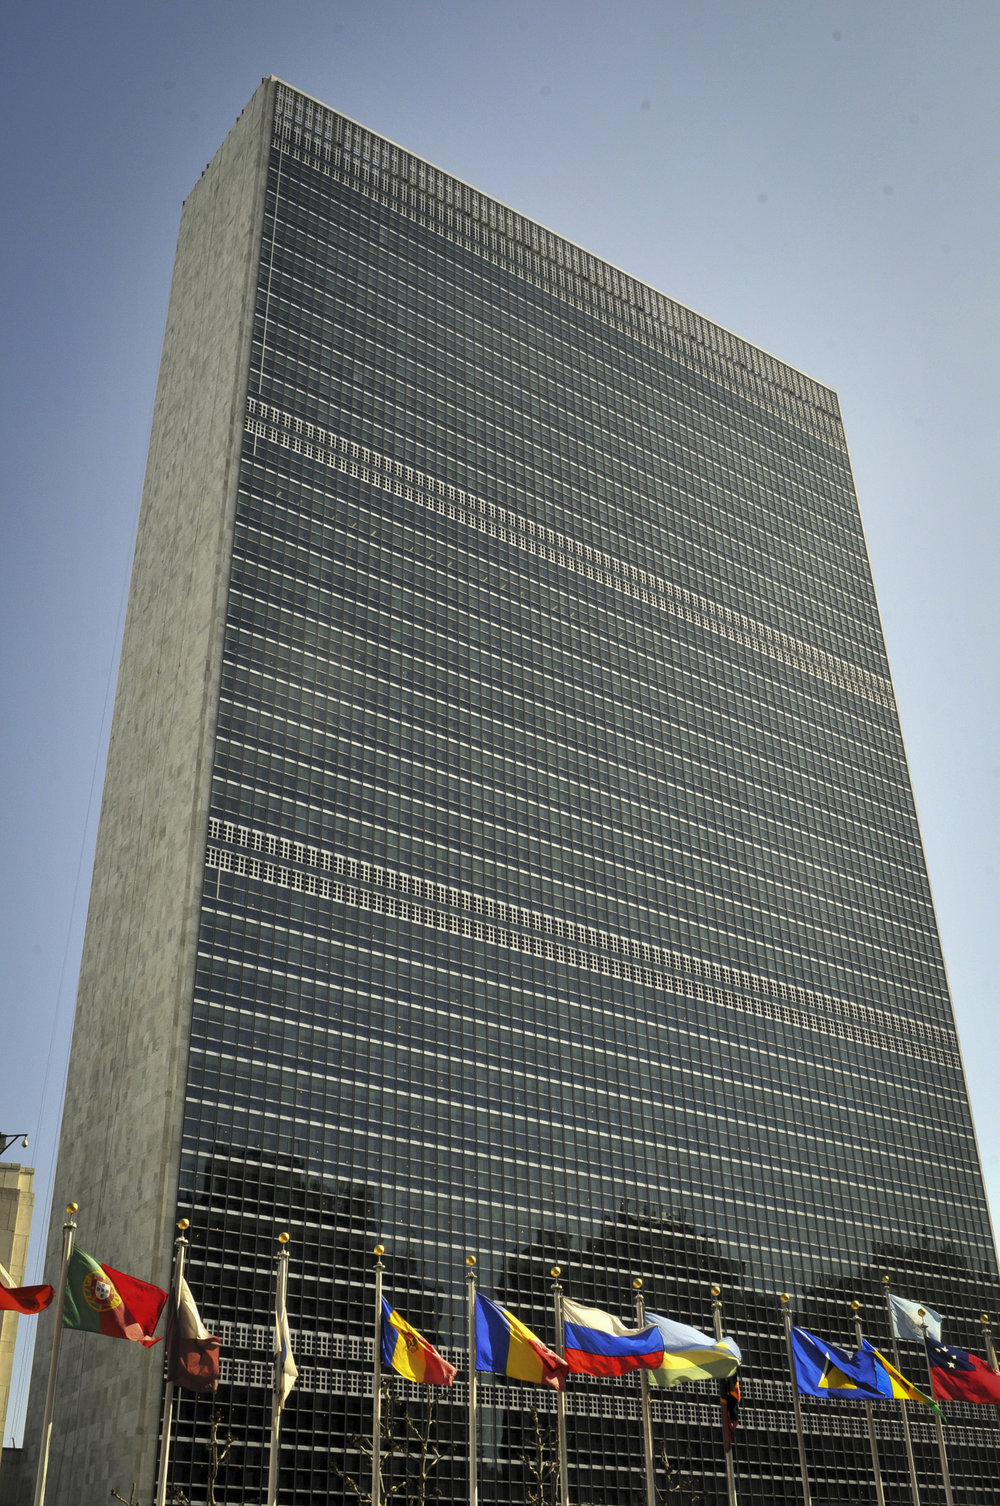 The United Nations building in New York City. Credit: Serge Attal/Flash90.